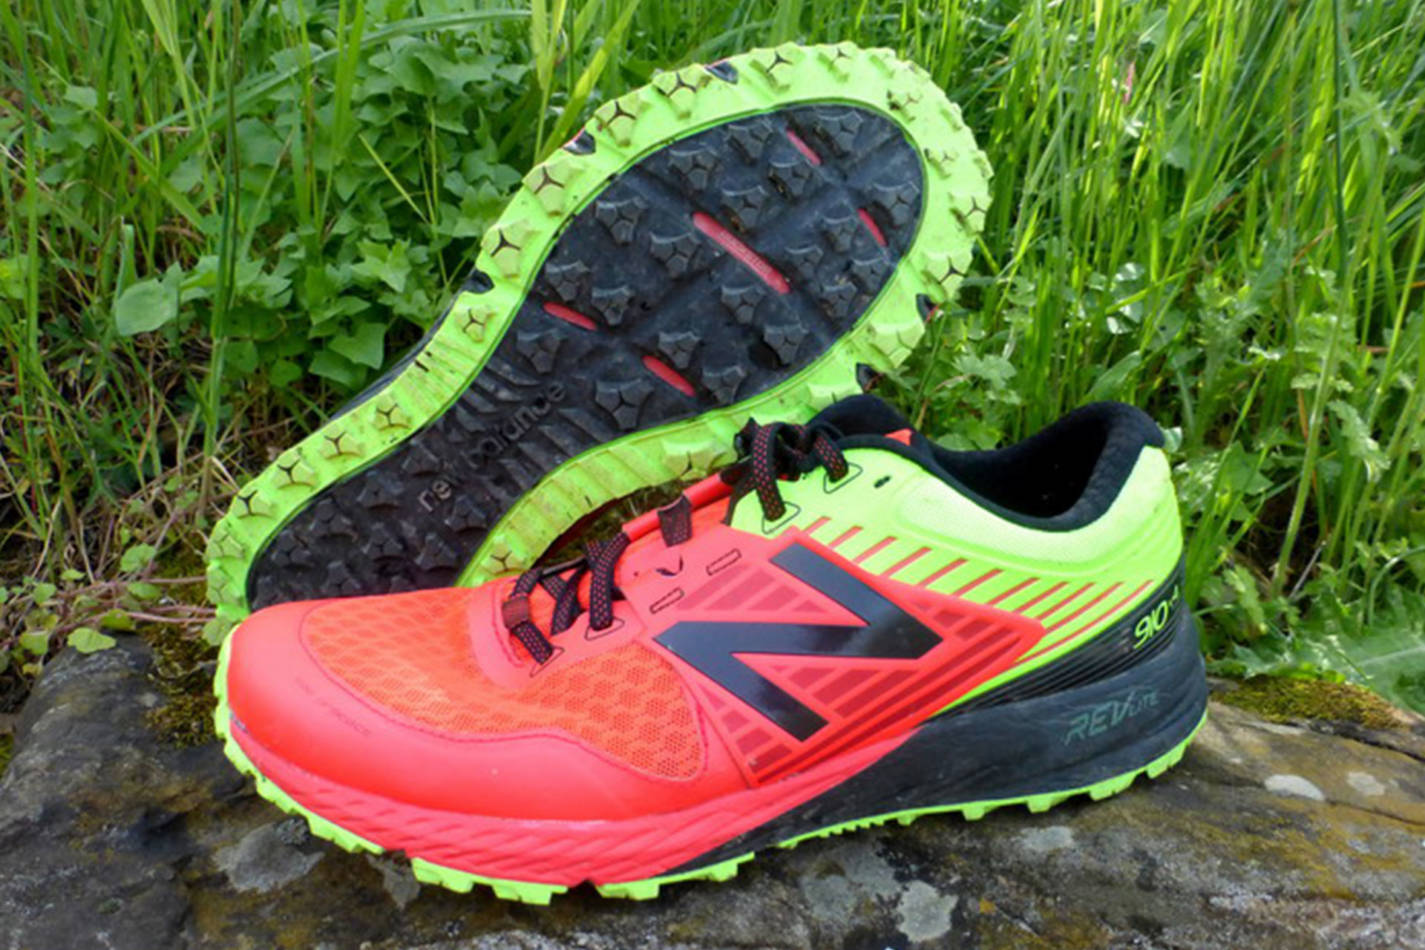 521eab9627510 Recensione: New Balance 910v4 | Trail Running